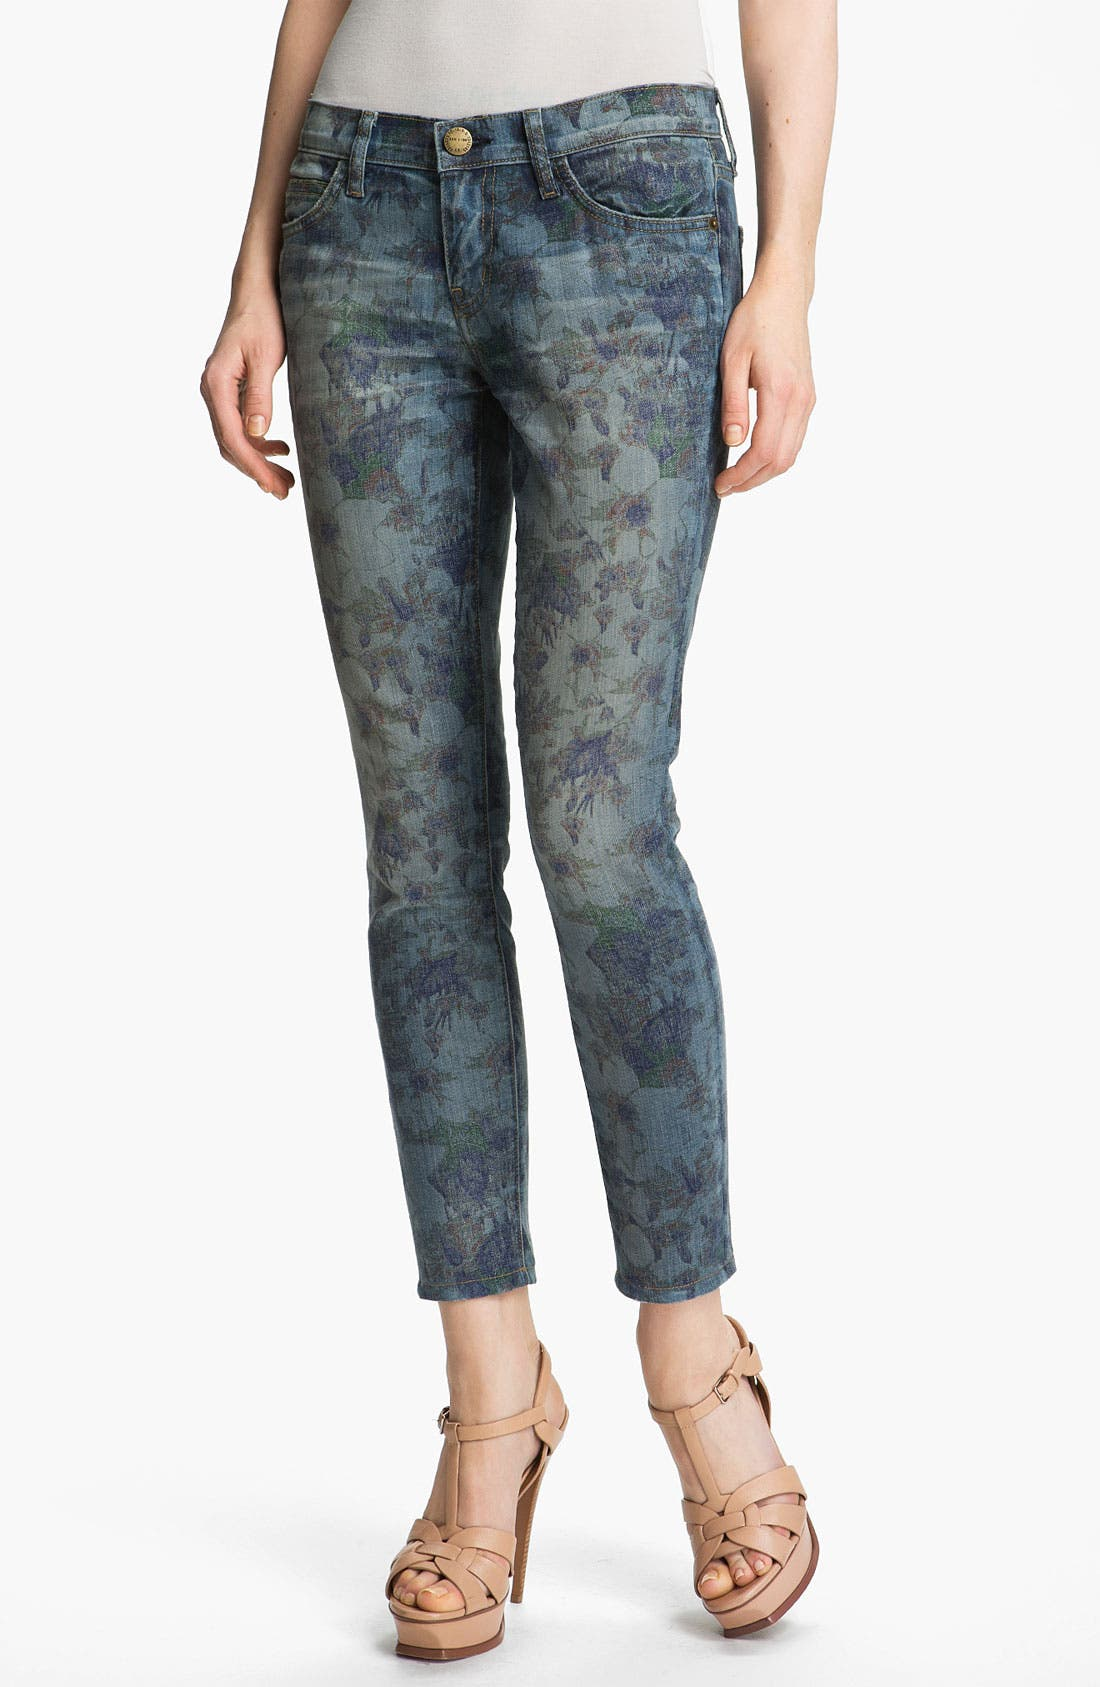 Alternate Image 1 Selected - Current/Elliott 'The Stiletto' Burnout Floral Print Stretch Jeans